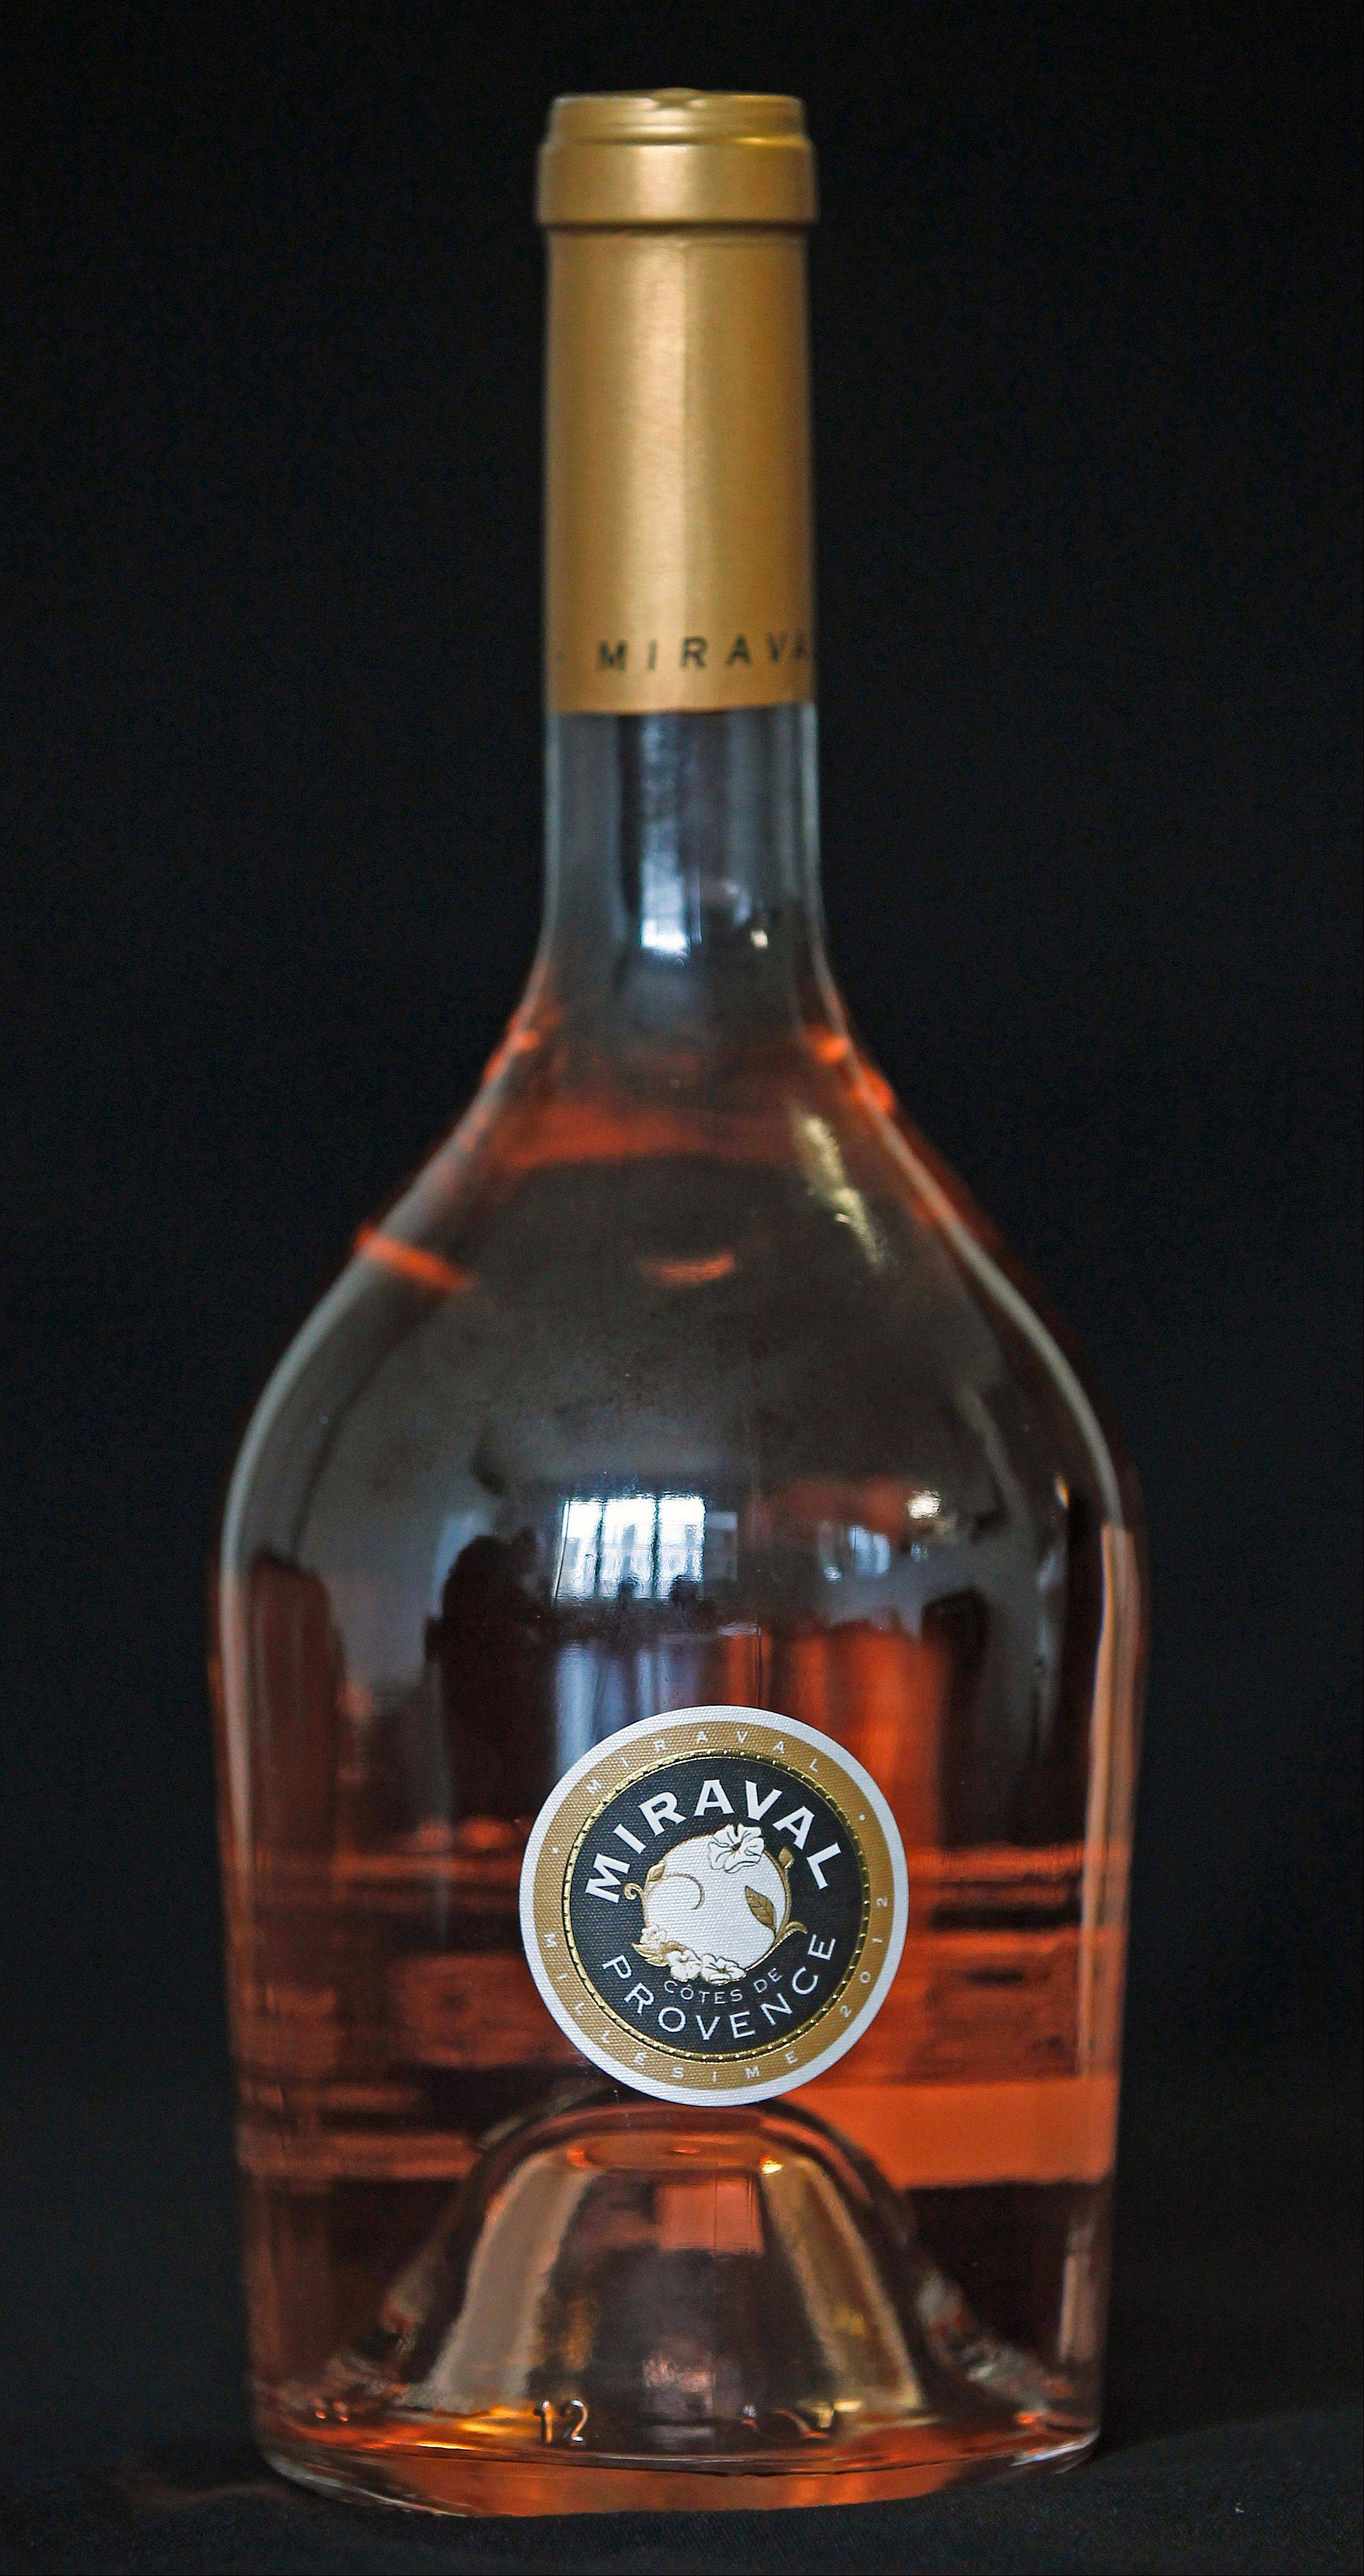 @Cation credit:Associated Press File PhotoAngelina Jolie and Brad Pitt partnered with the Perrin French winemaking family to come up with Miraval. Grapes for the wine are grown on the celebrity couple's land in the south of France.